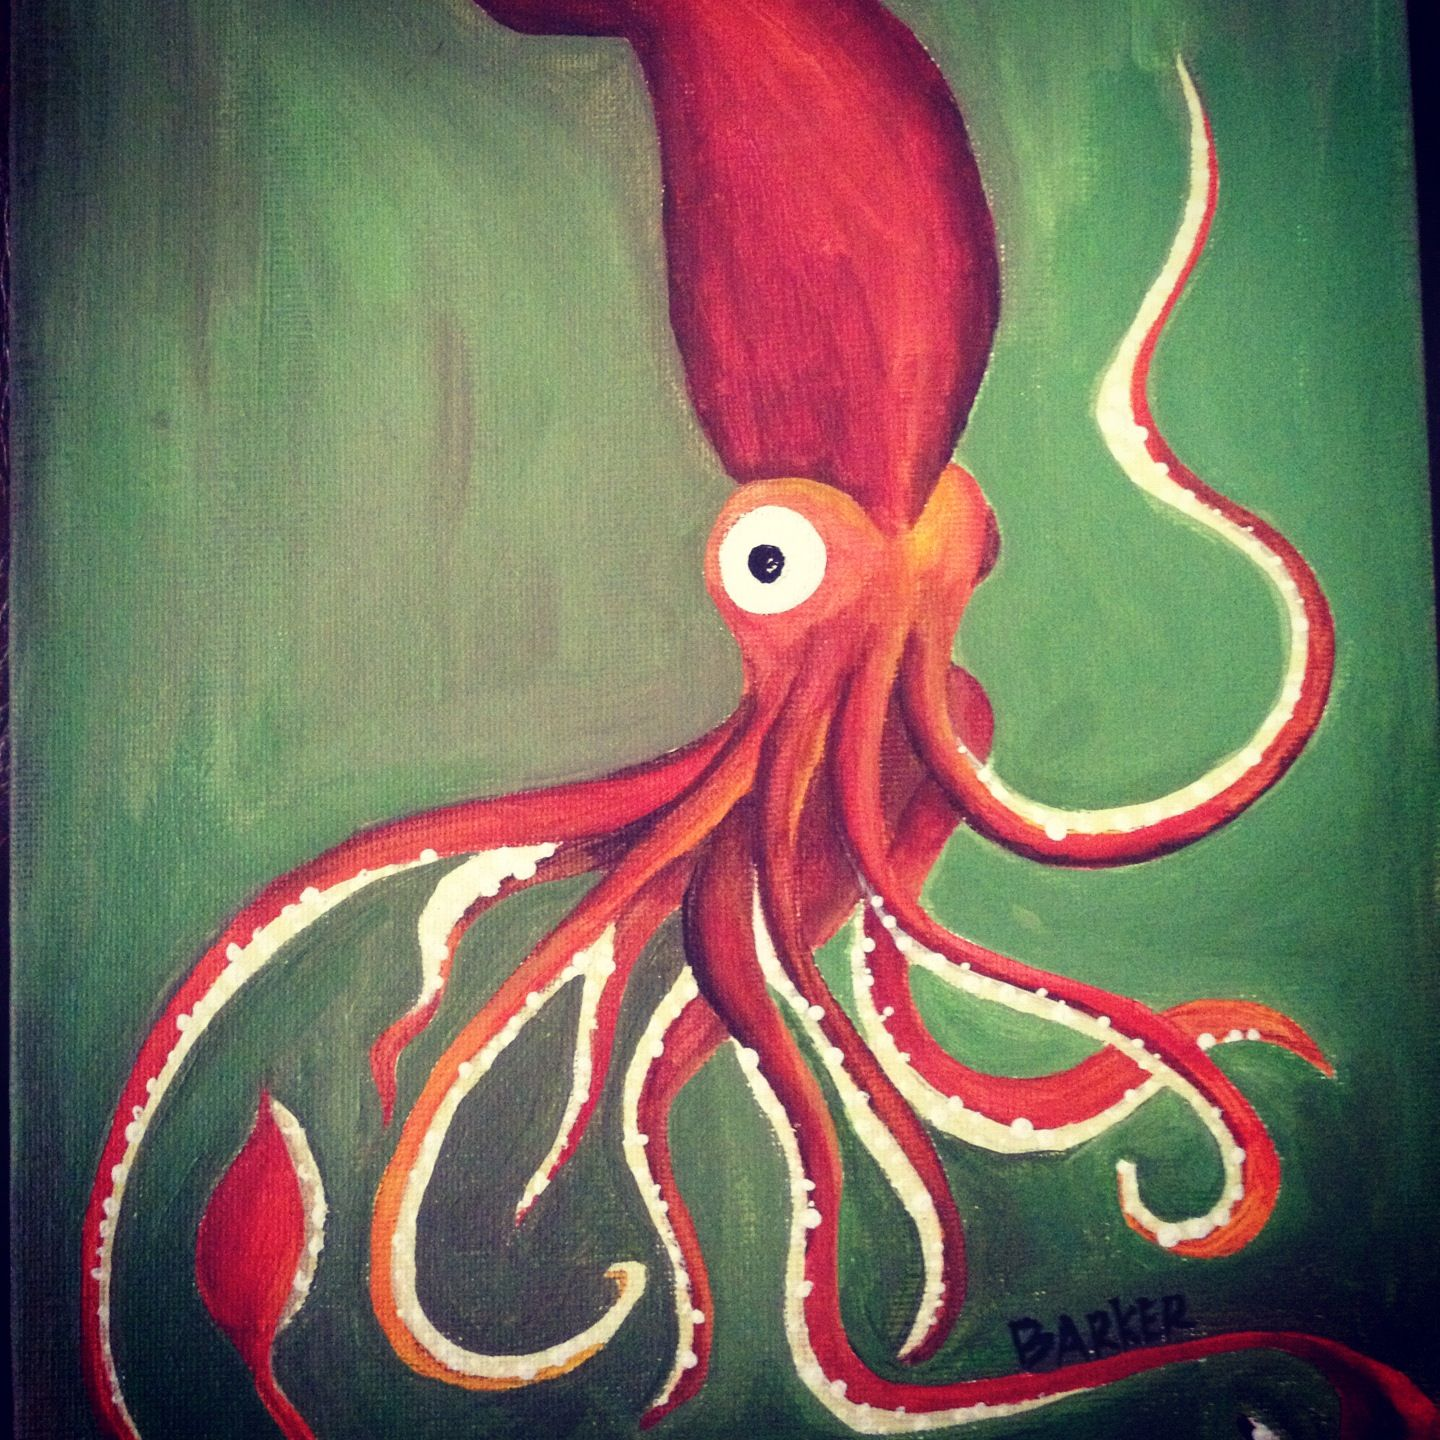 Acrylic Squid Painting | Artsy Fartsy | Pinterest ...